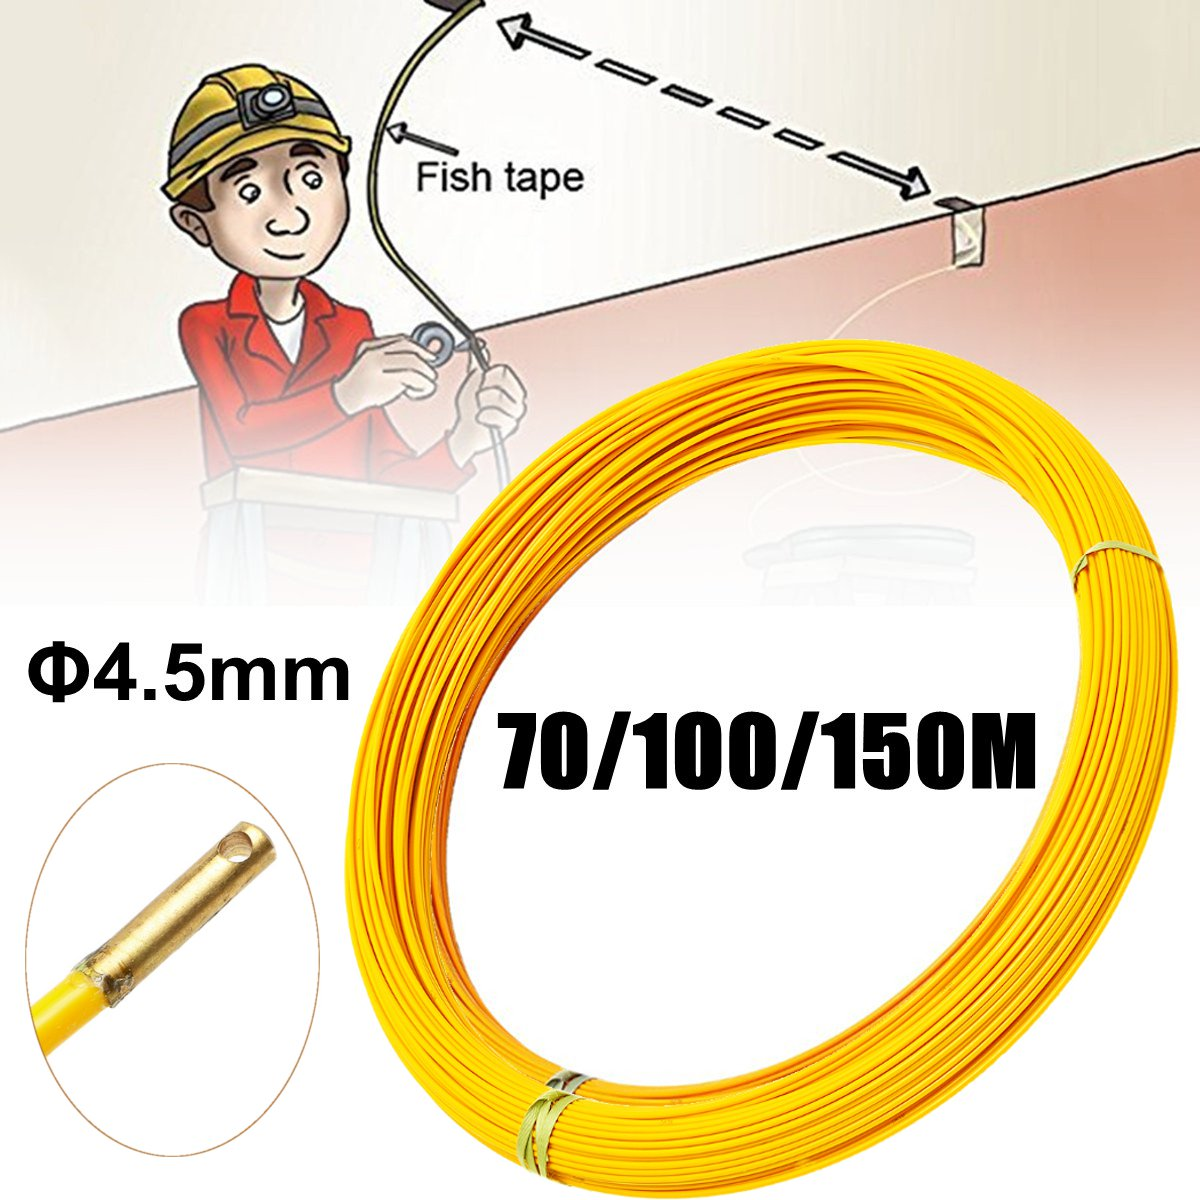 New 70M/100M/150M 4.5mm Fiberglass Cable Puller Fish Tape Reel Conduit Ducting Rodder Pulling Wall Wire Conduit Wiring Guide Too